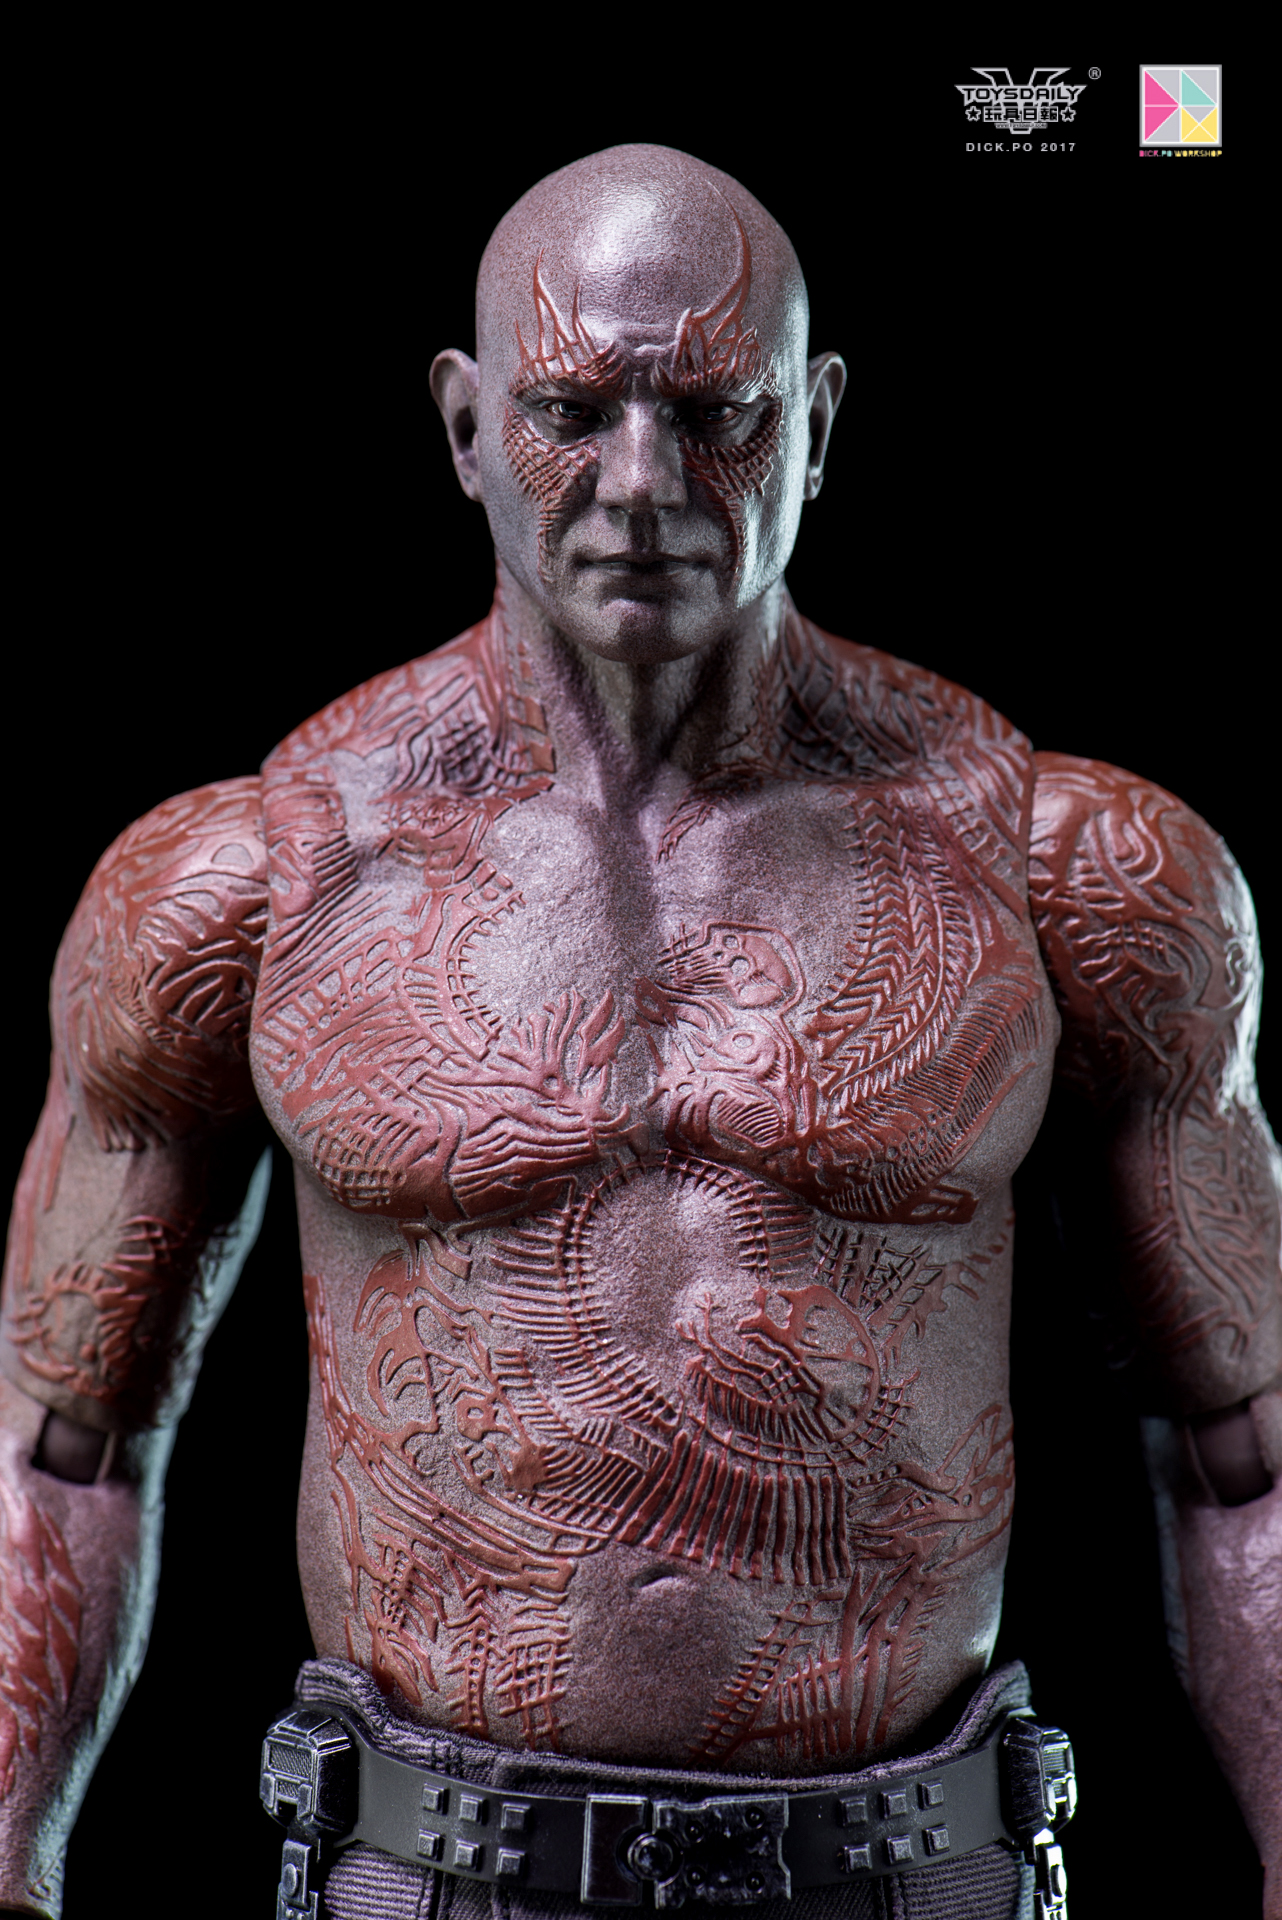 toysdaily_dick.po_Hottoys_DARX-12.jpg